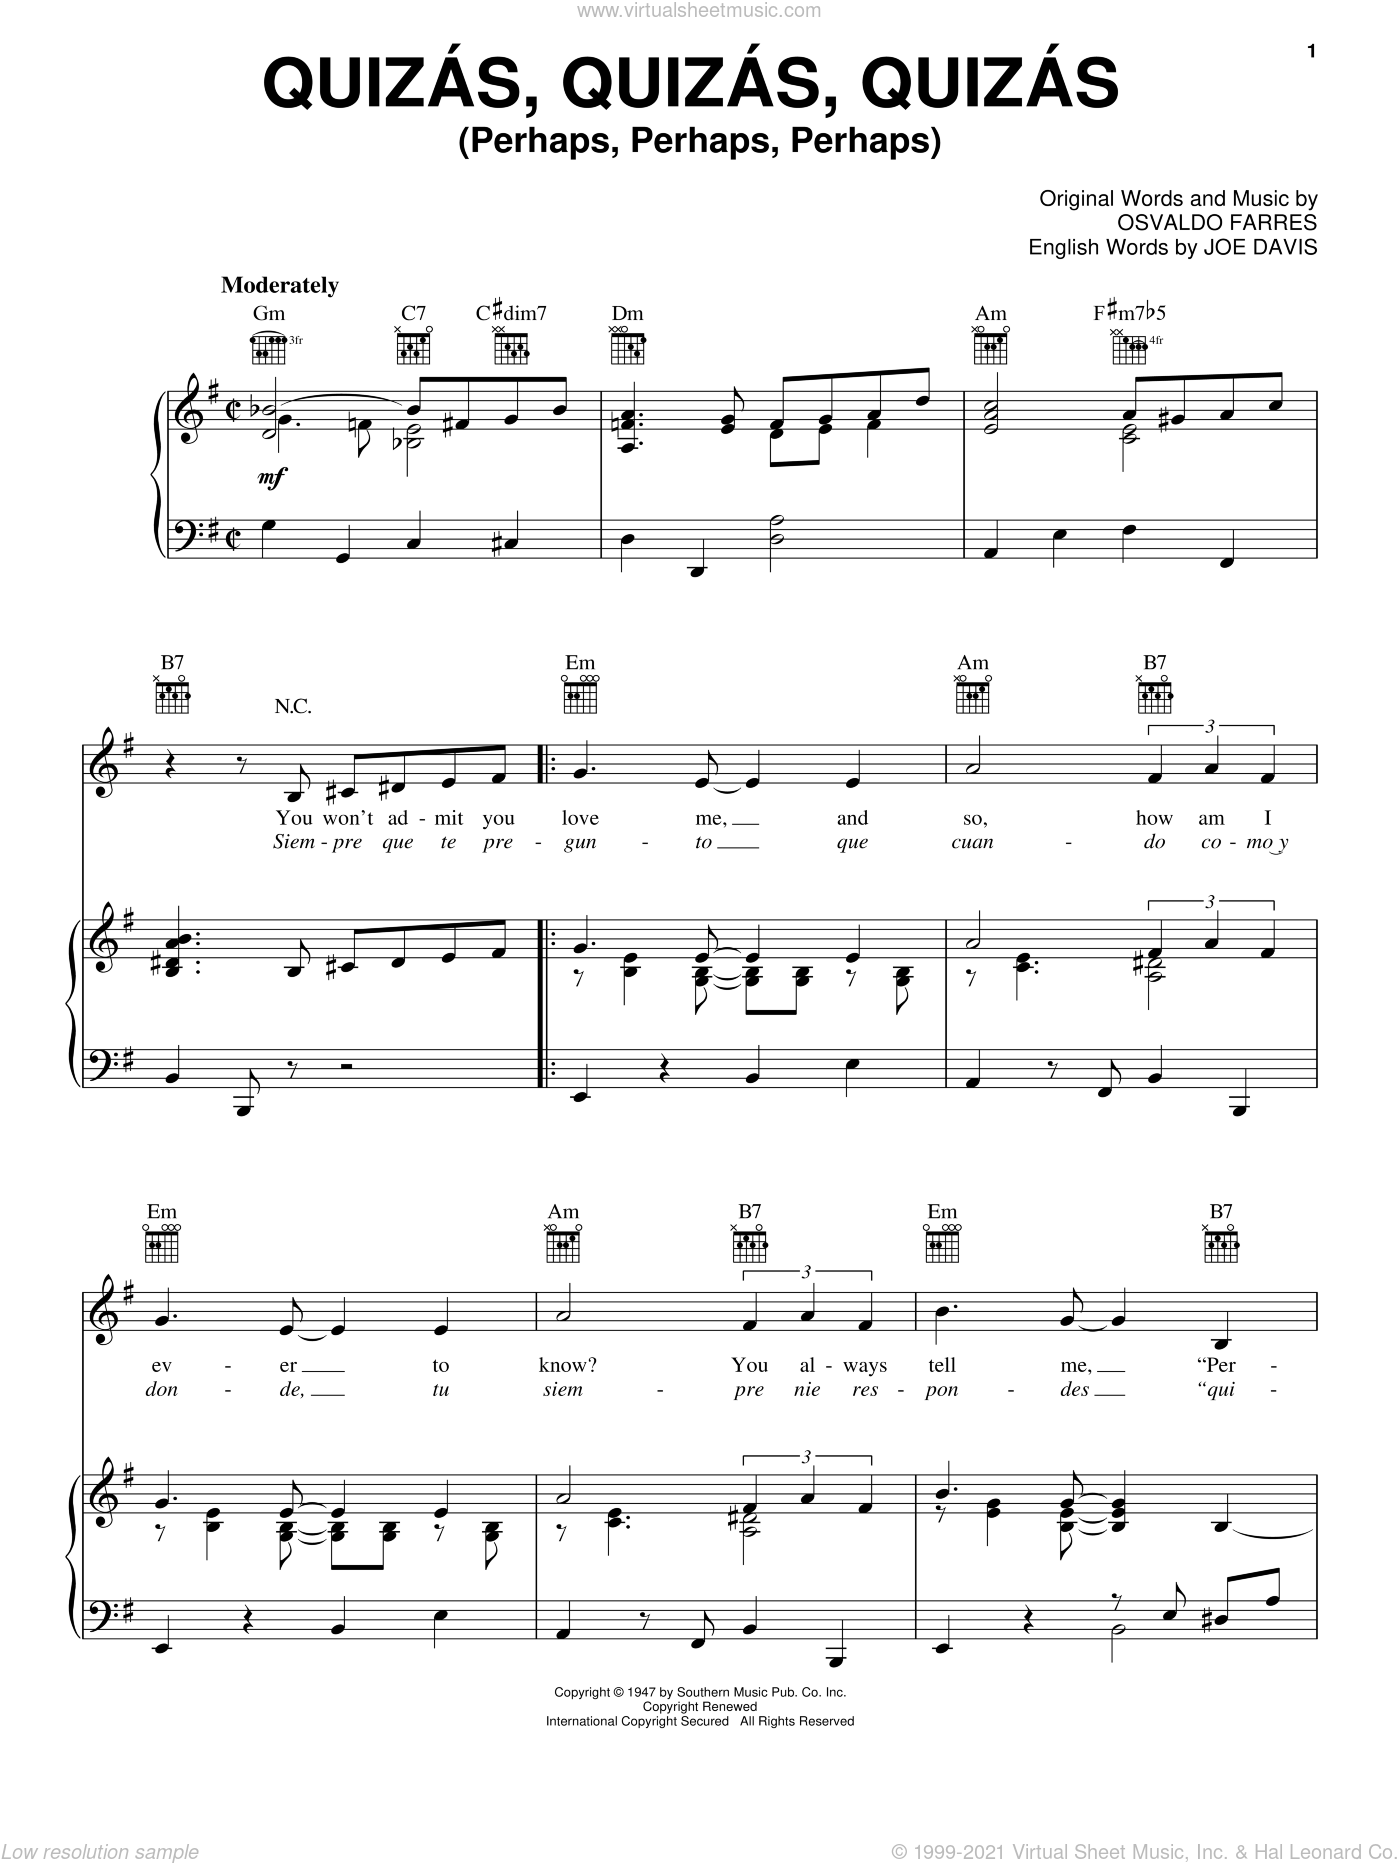 Quizas, Quizas, Quizas (Perhaps, Perhaps, Perhaps) sheet music for voice, piano or guitar by Osvaldo Farres and Joe Davis, intermediate skill level